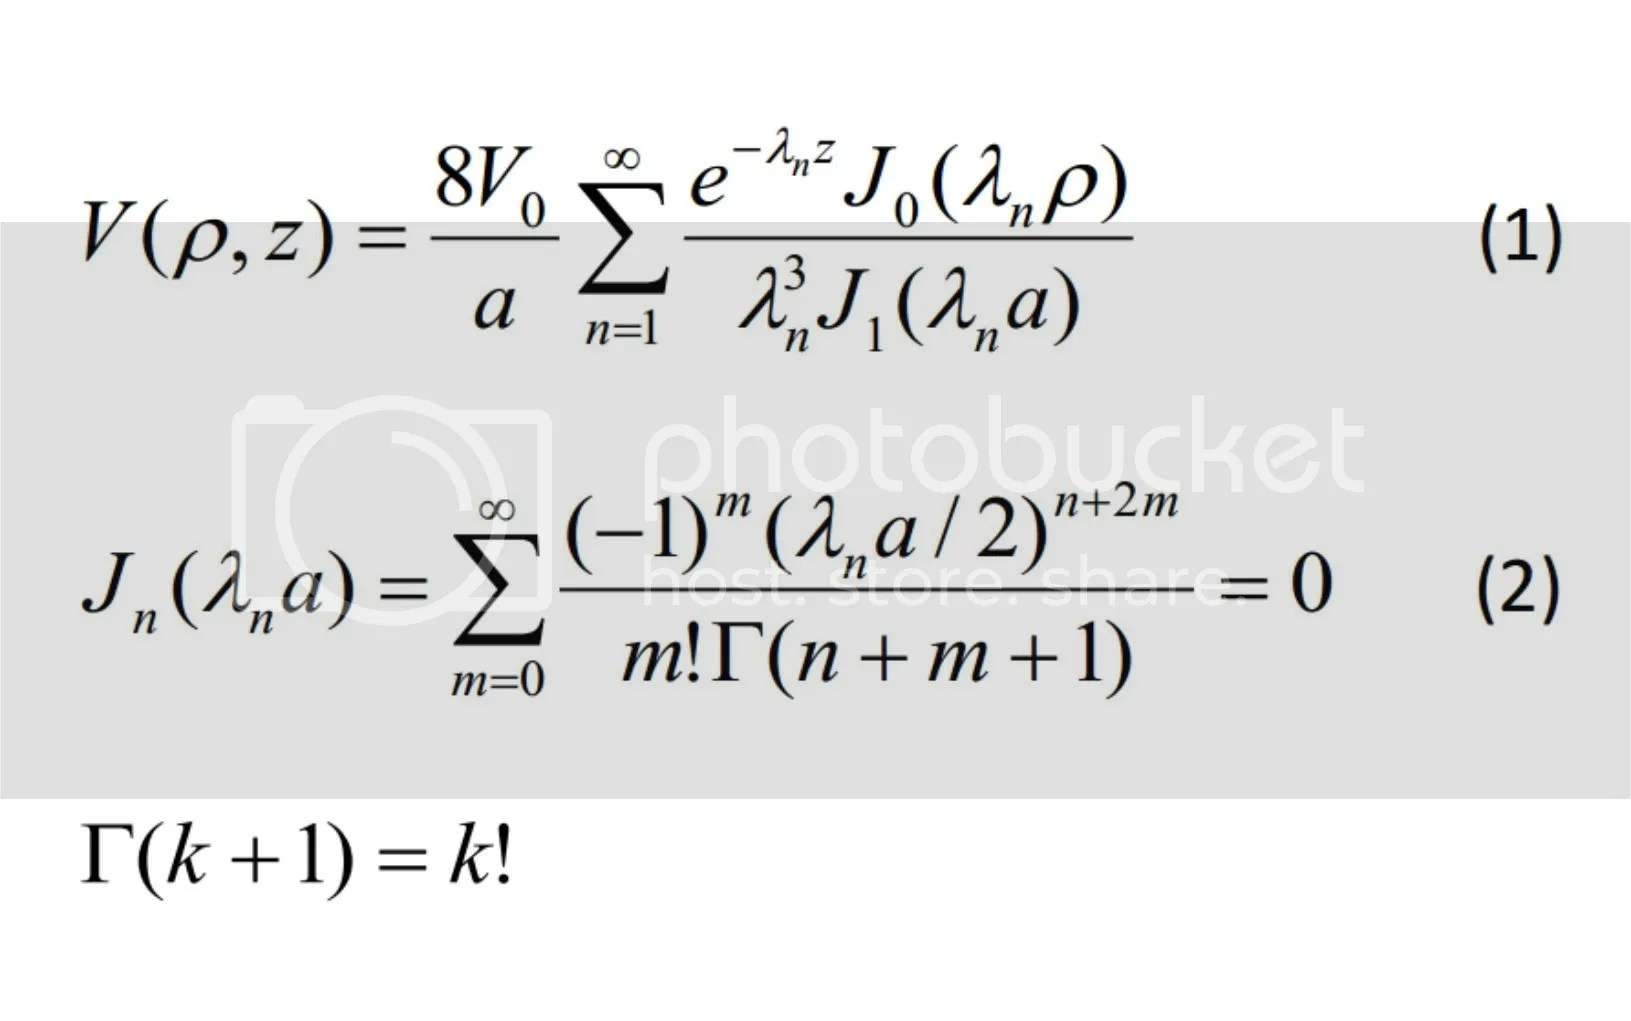 Iterative procedure for potential distribution of a